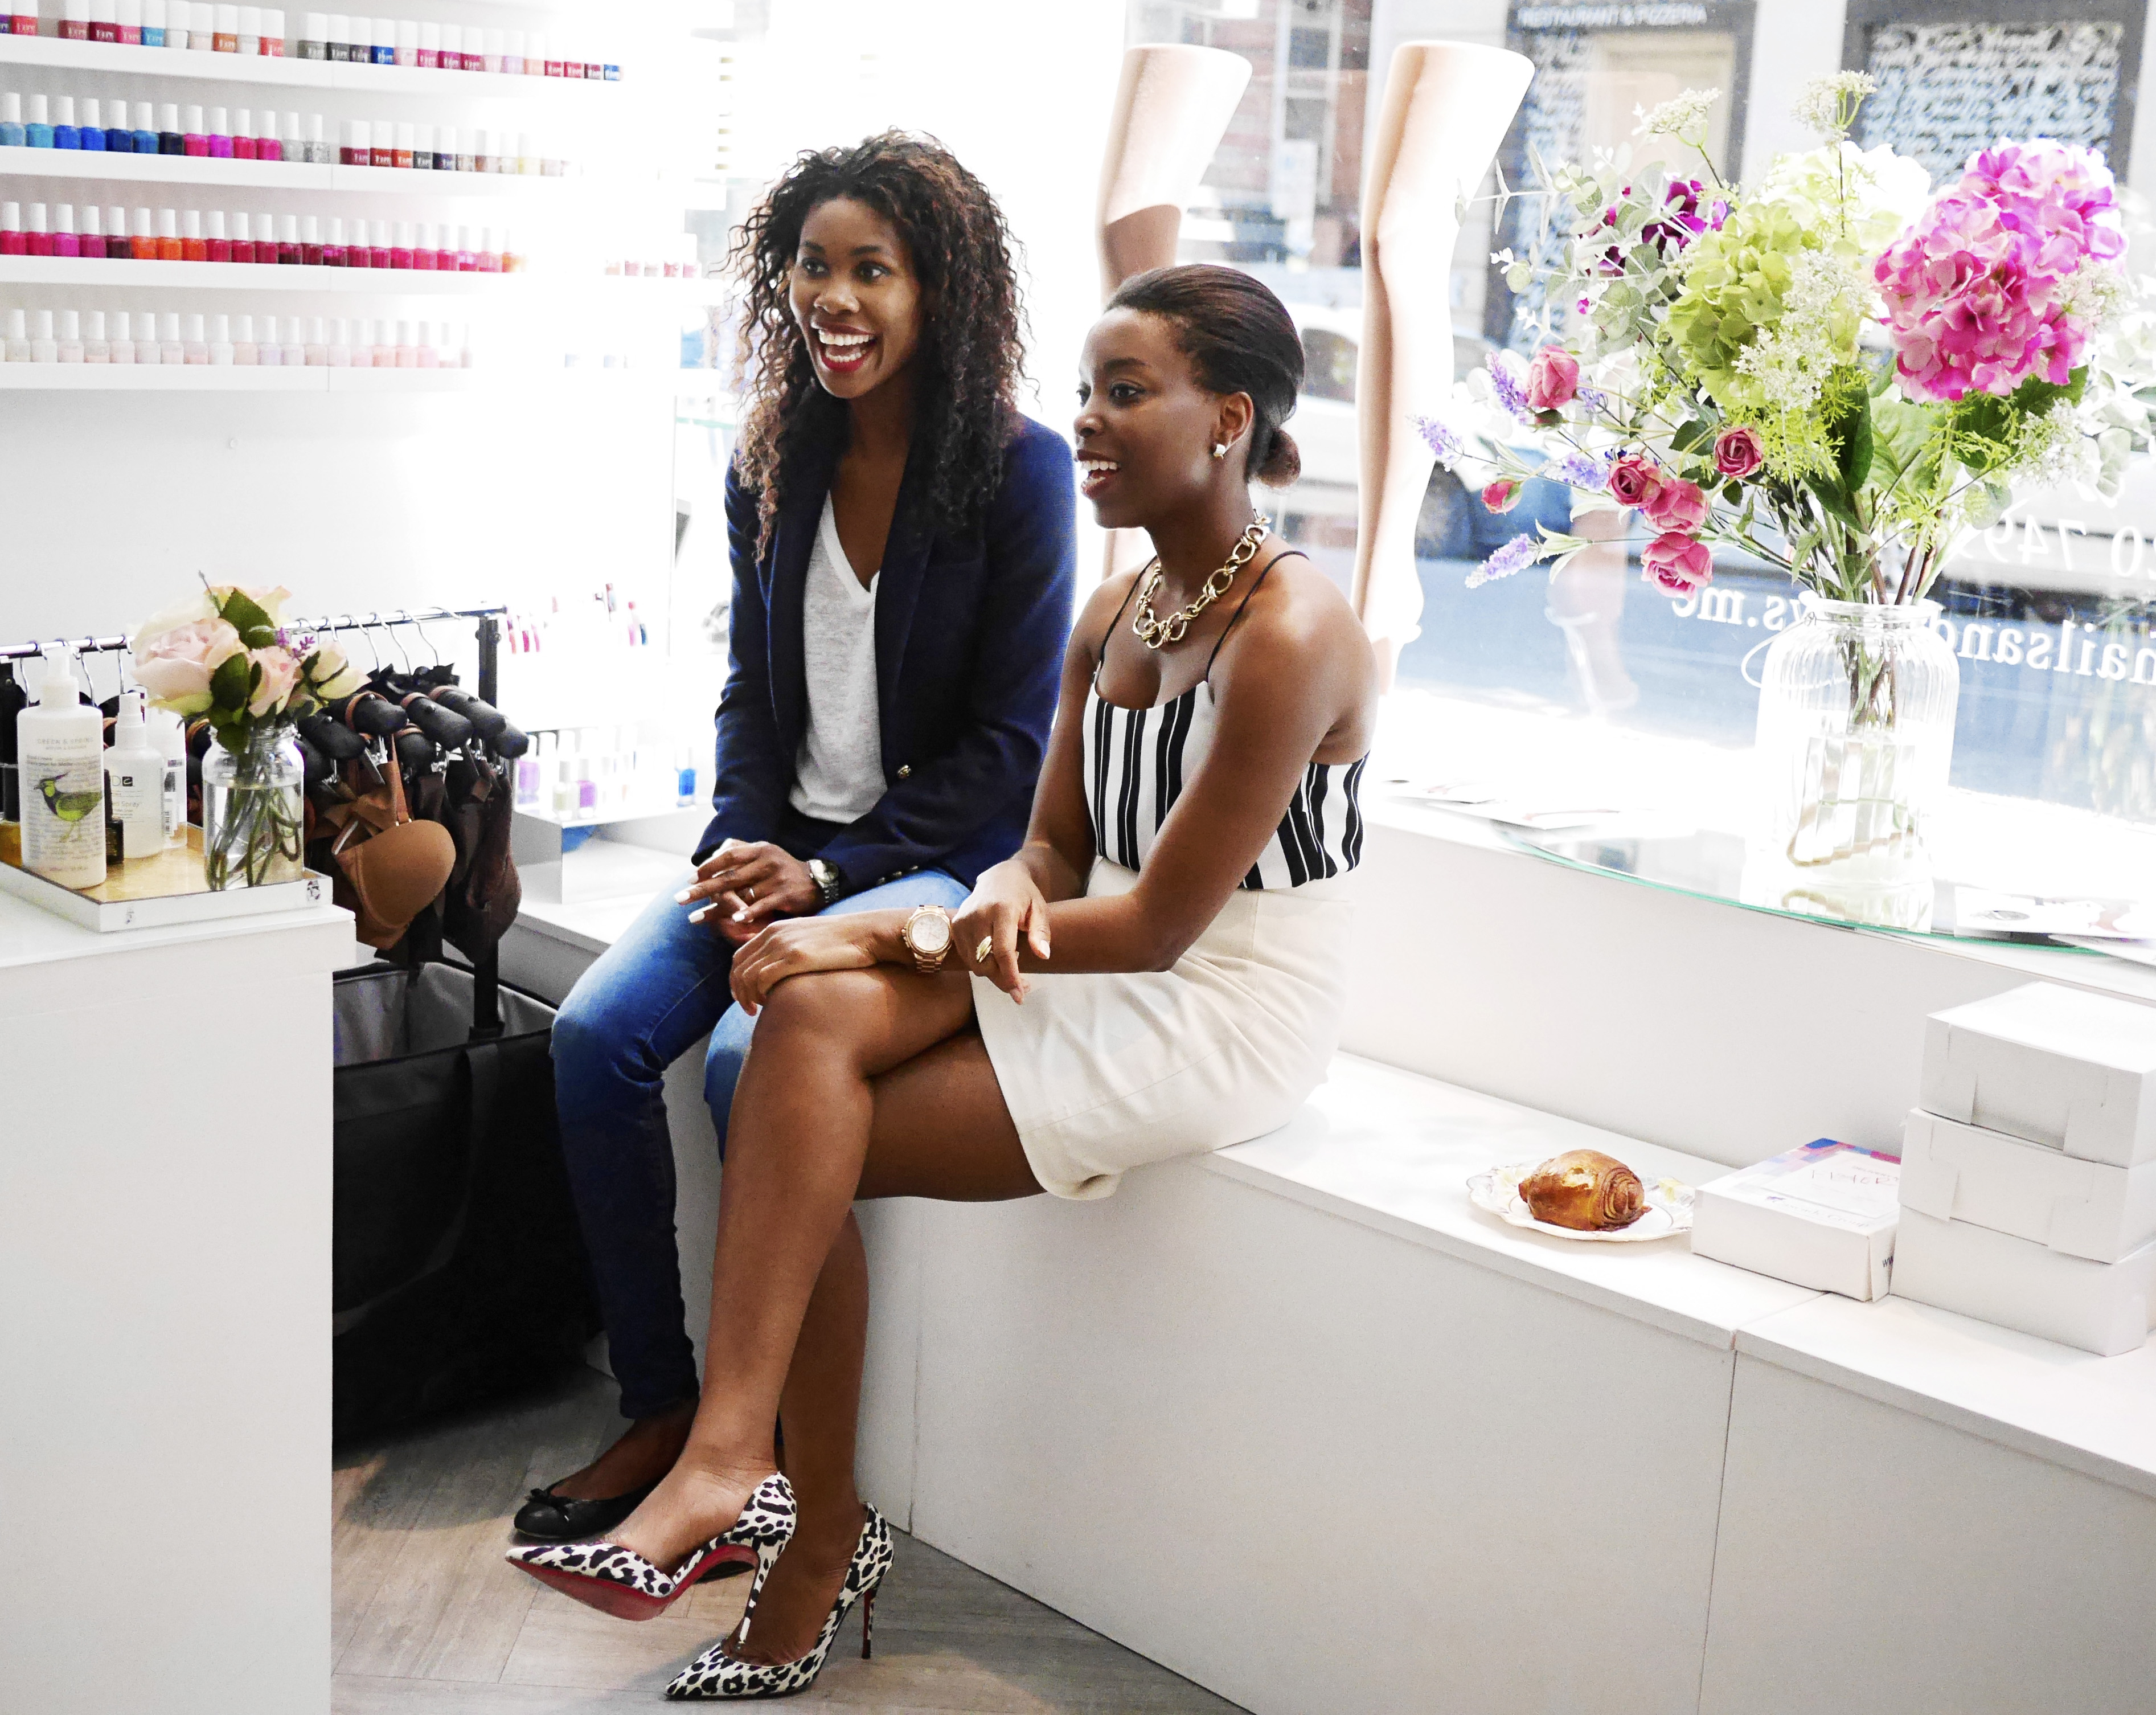 4d6542bf61ff6 Nubian Skin aims to empower and inspire women by alleviating the struggle  women face when trying to find natural tone garments. Founder Ade Hassan  notes ...